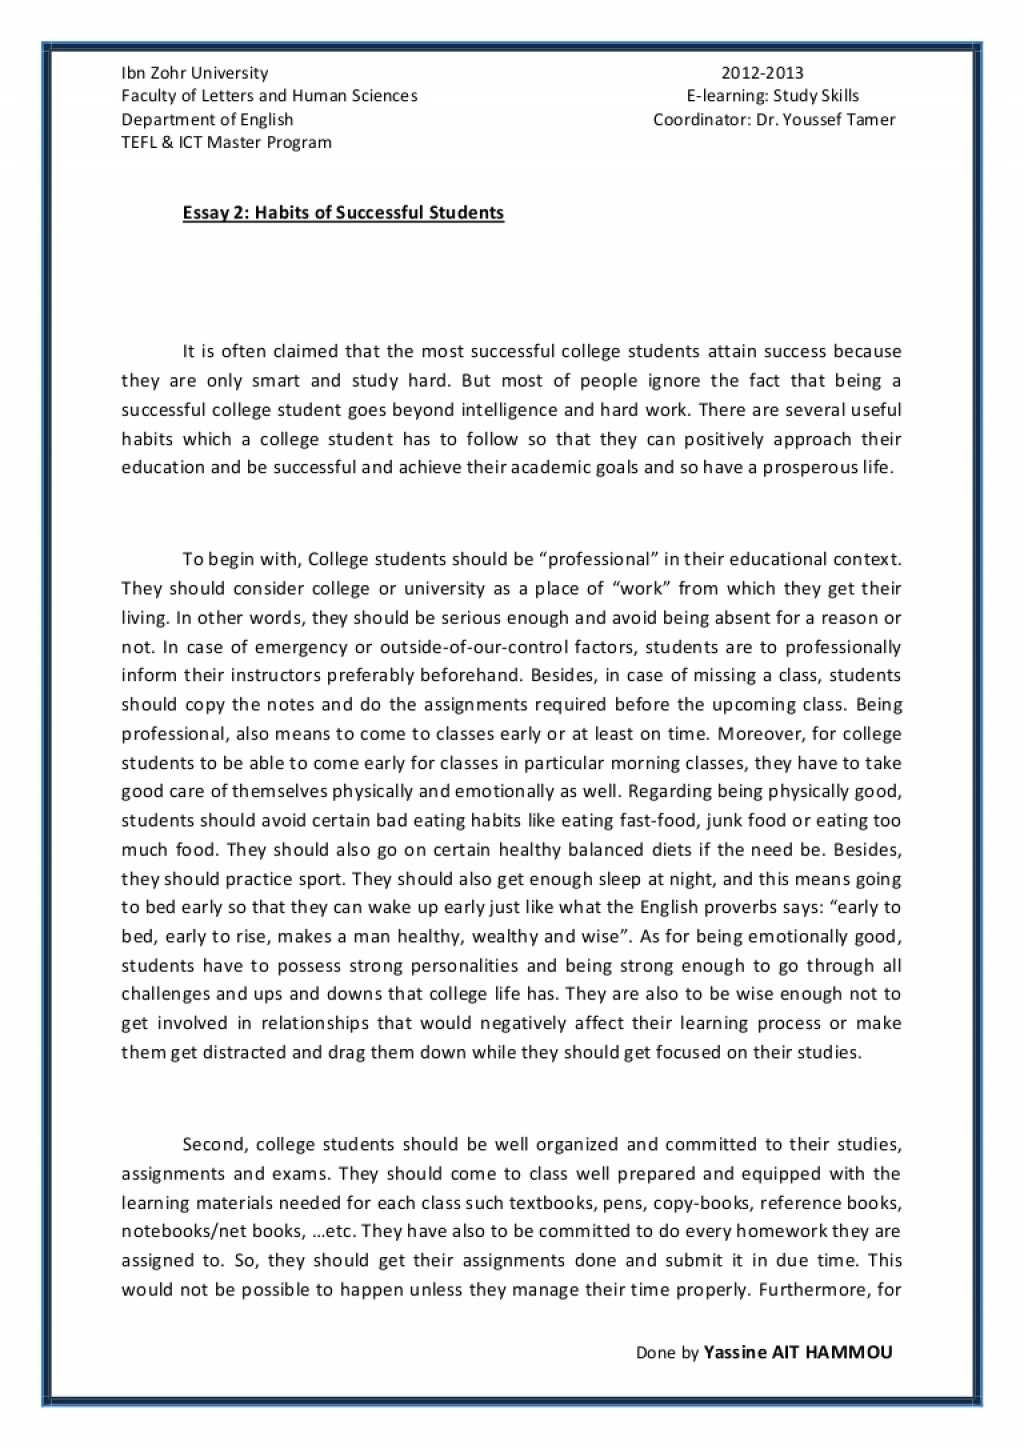 008 How Long Is Short Essay Essay2 Succesfulcollegestudentshabitsbyyassineaithammou Phpapp01 Thumbnail Incredible A Answer For College Applications Scholarship Large